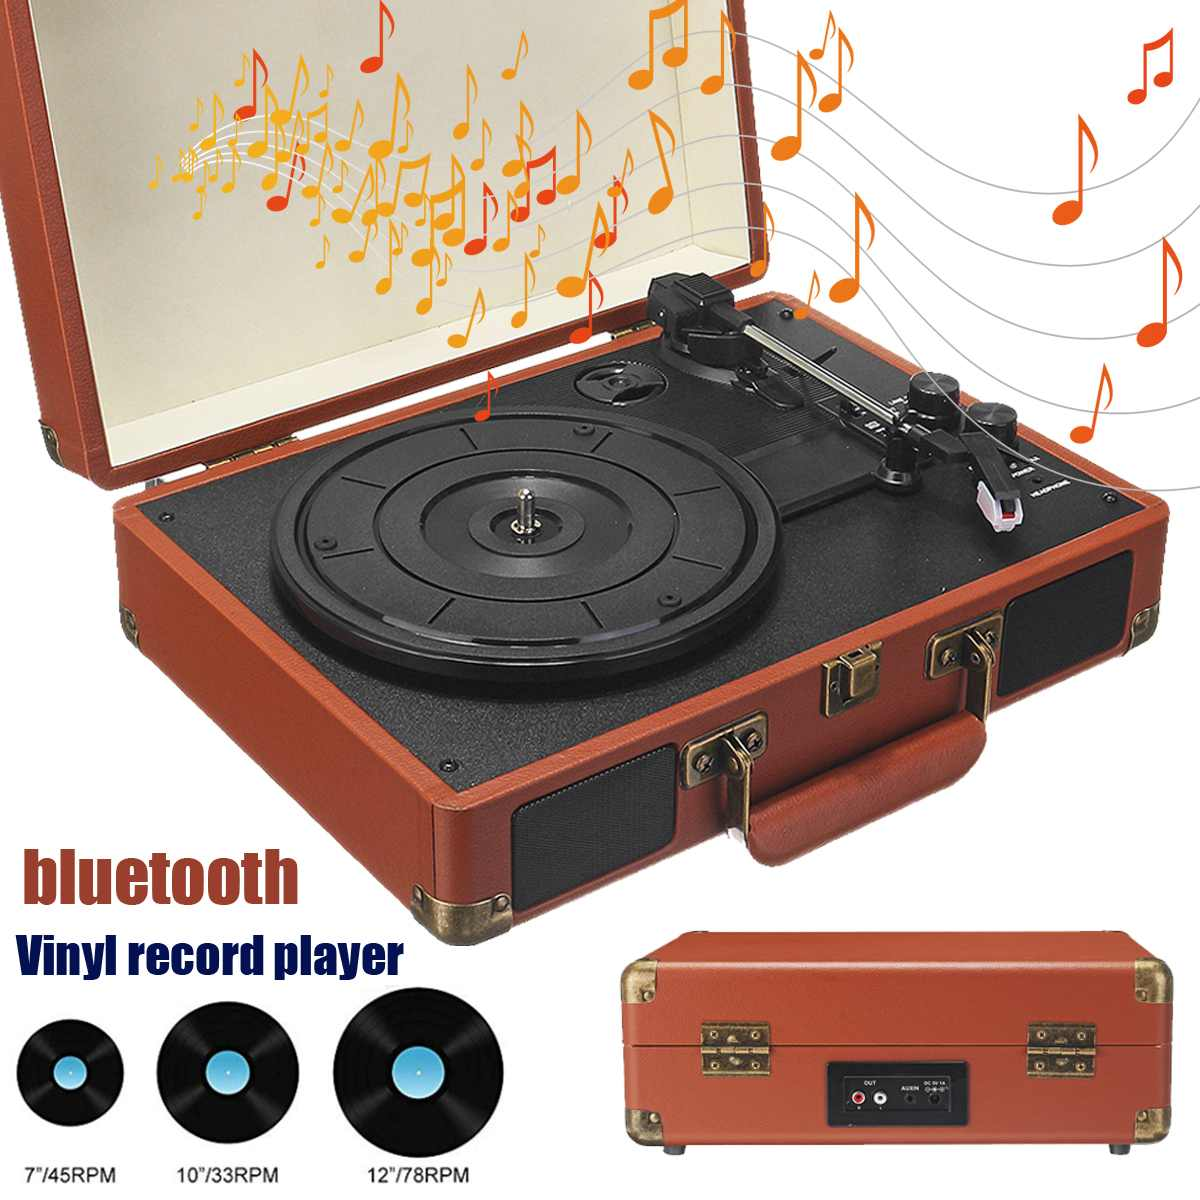 Wireless bluetooth ortable Suitcase Turntable Vinyl Record Vintage 33/45/78 RPM Brown  Phone Player Aux in Line out 100 240V|Portable Speakers| |  - title=